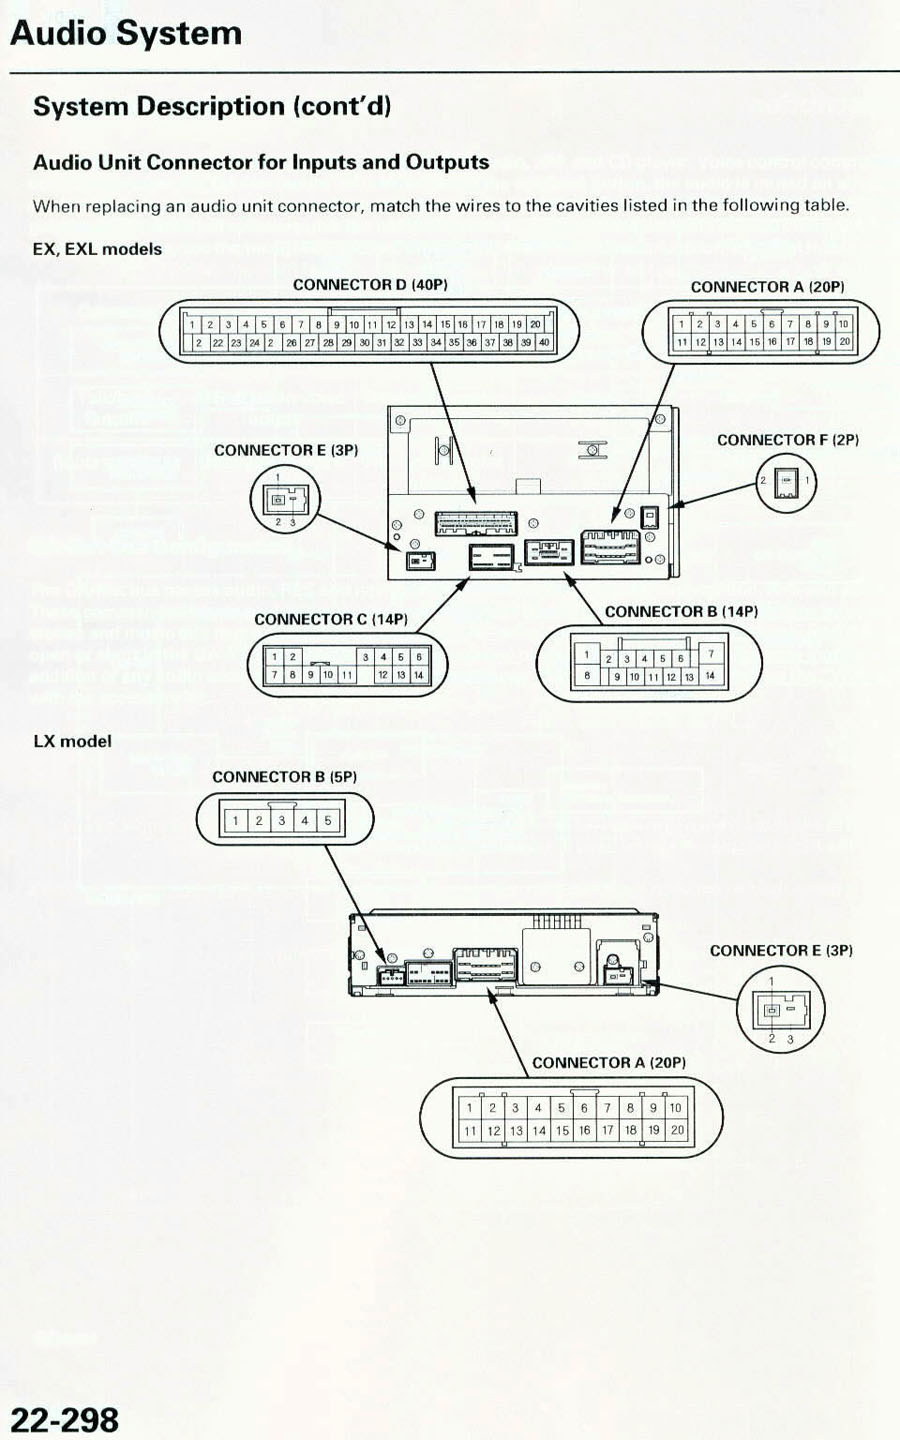 honda crv wiring diagram images honda crv interior wiring diagram radio likewise 2006 honda pilot audio